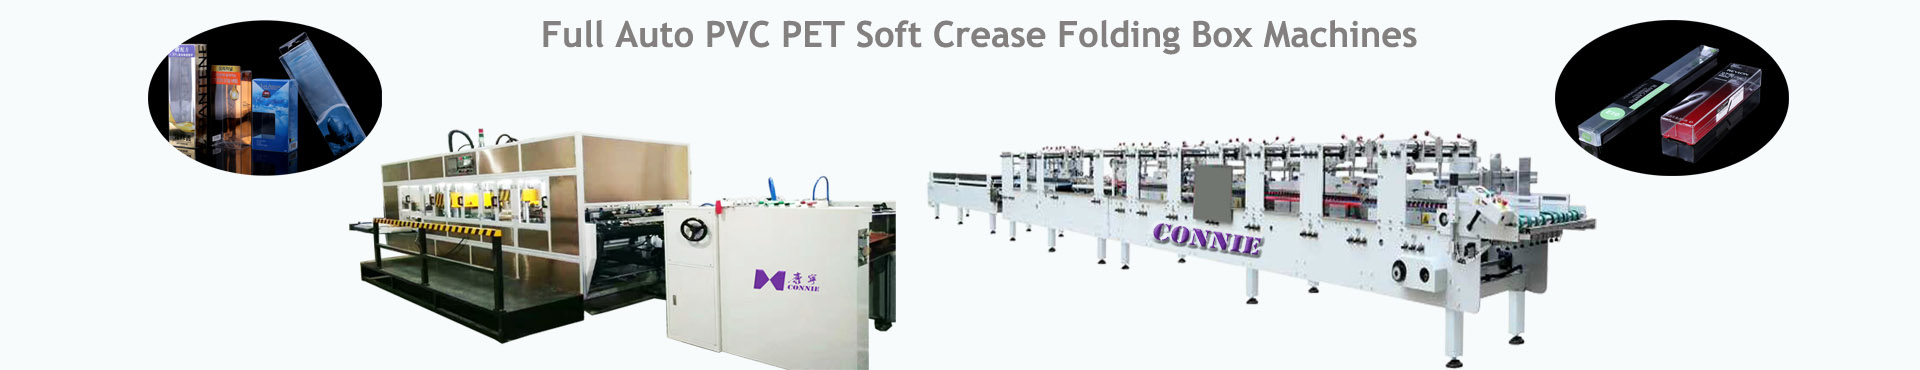 soft crease folding box machine